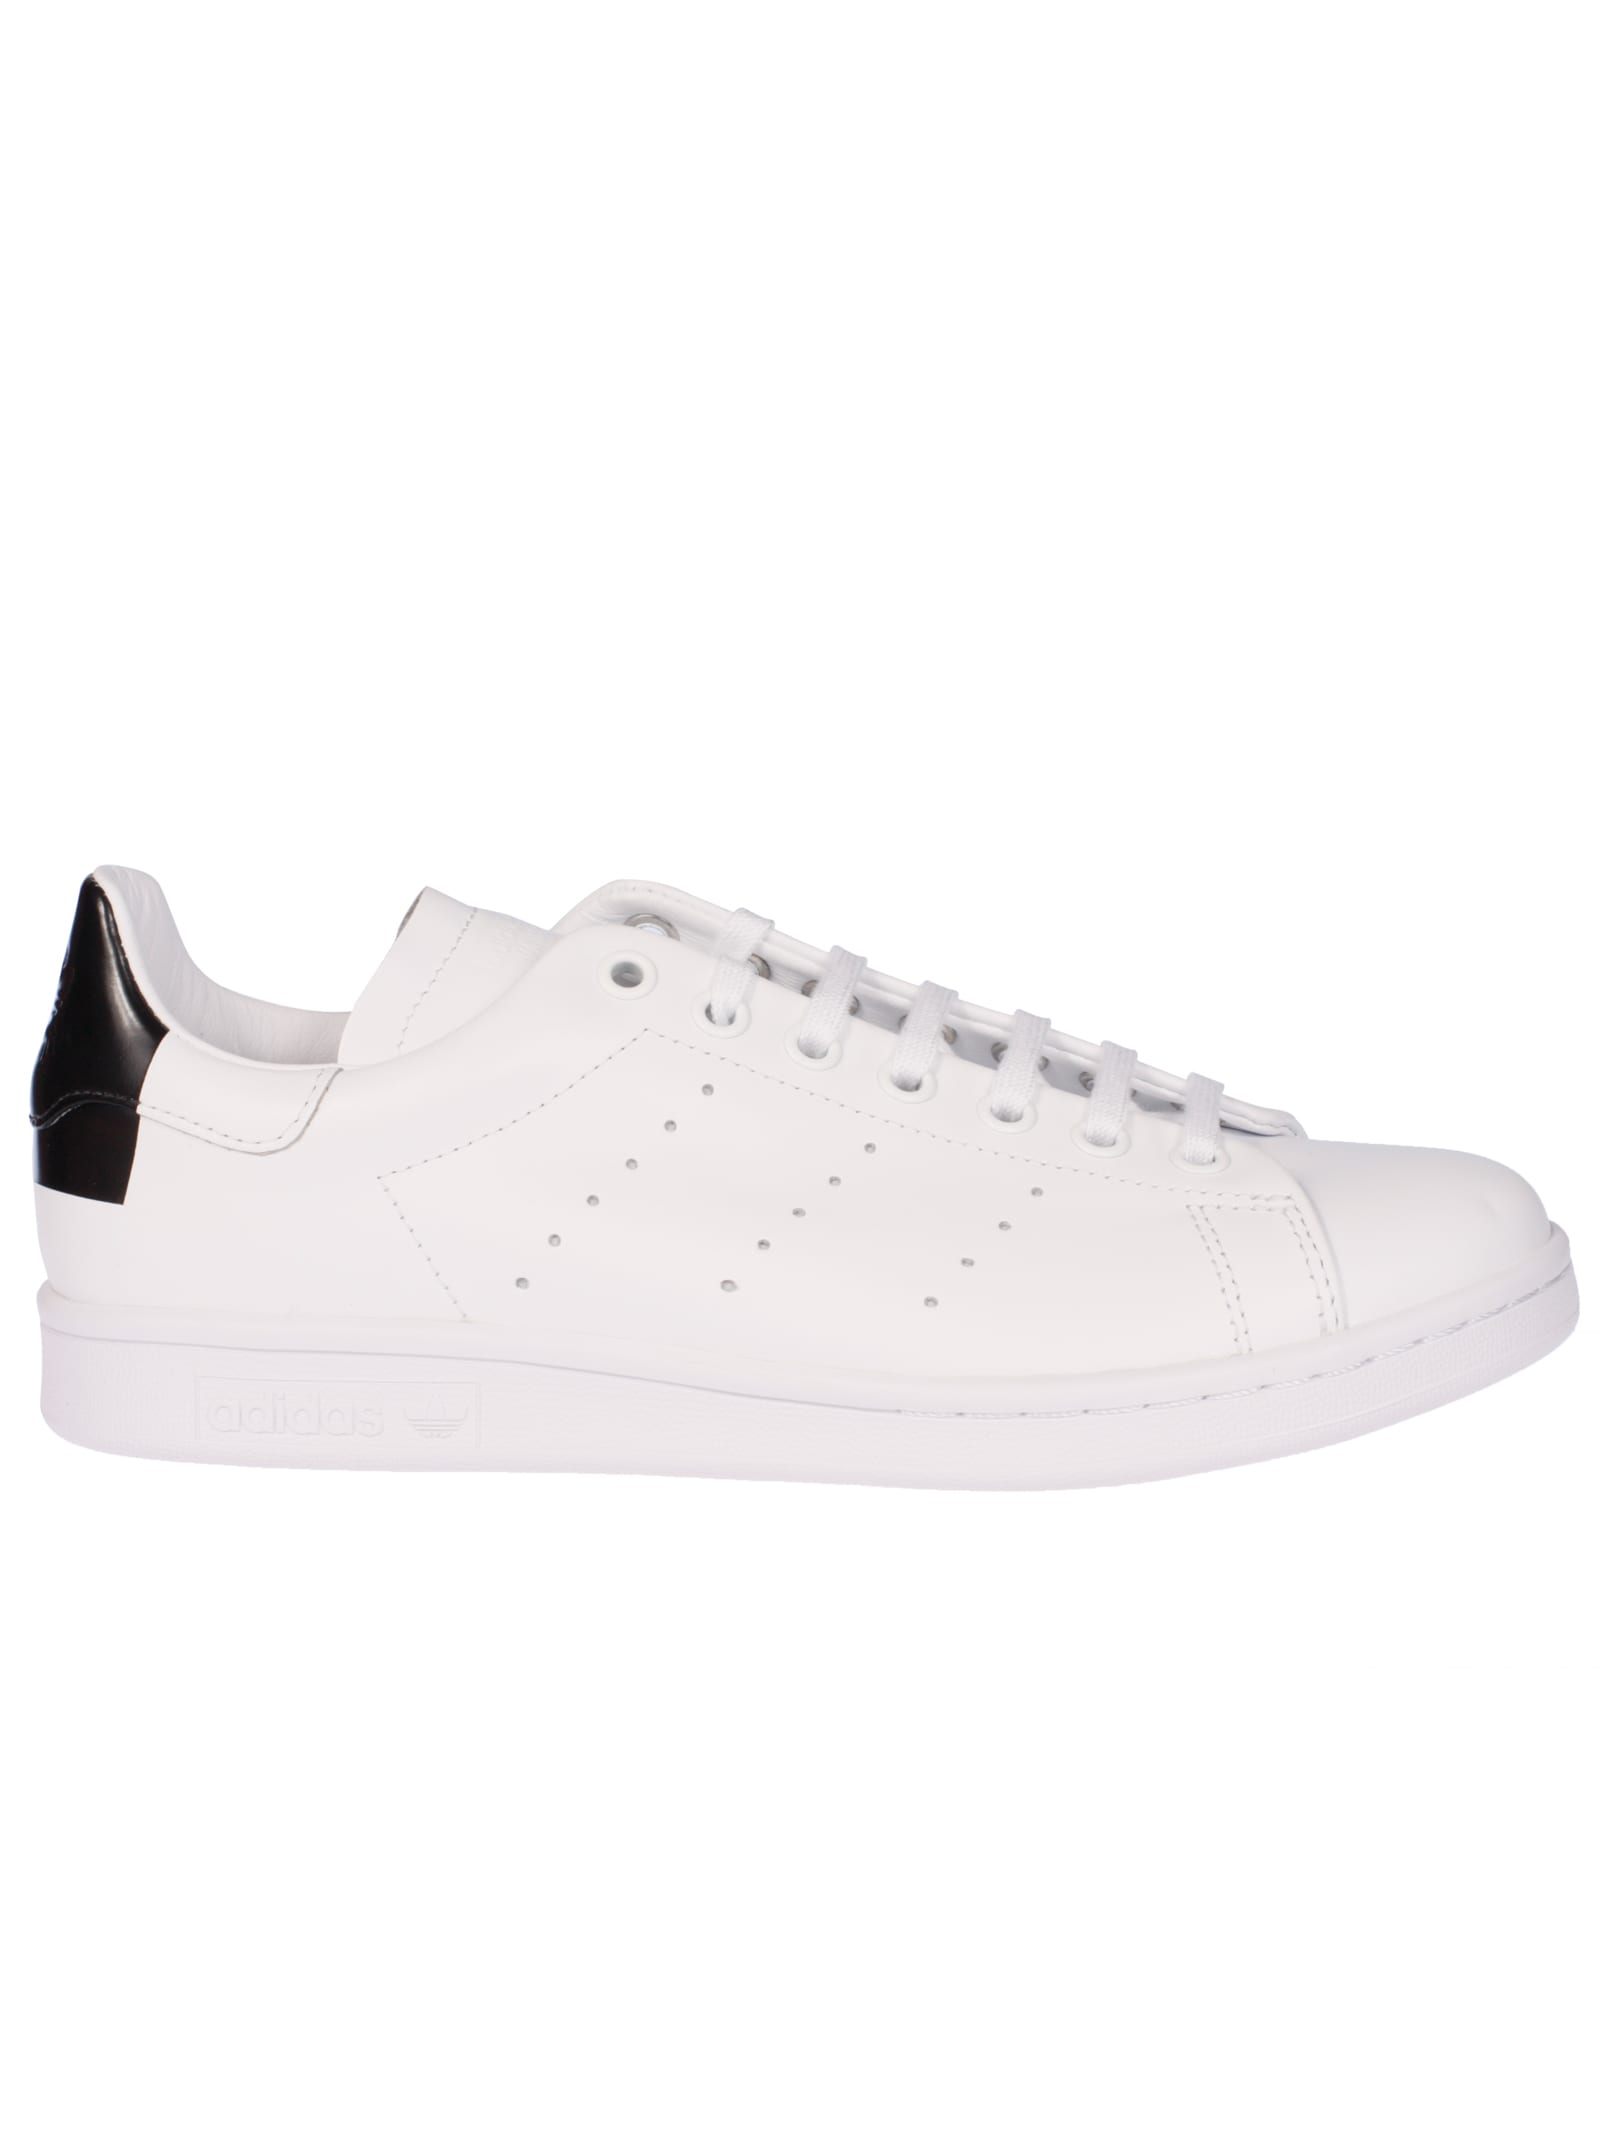 Best price on the market at italist | Adidas Adidas Stan Smith Recon Sneakers